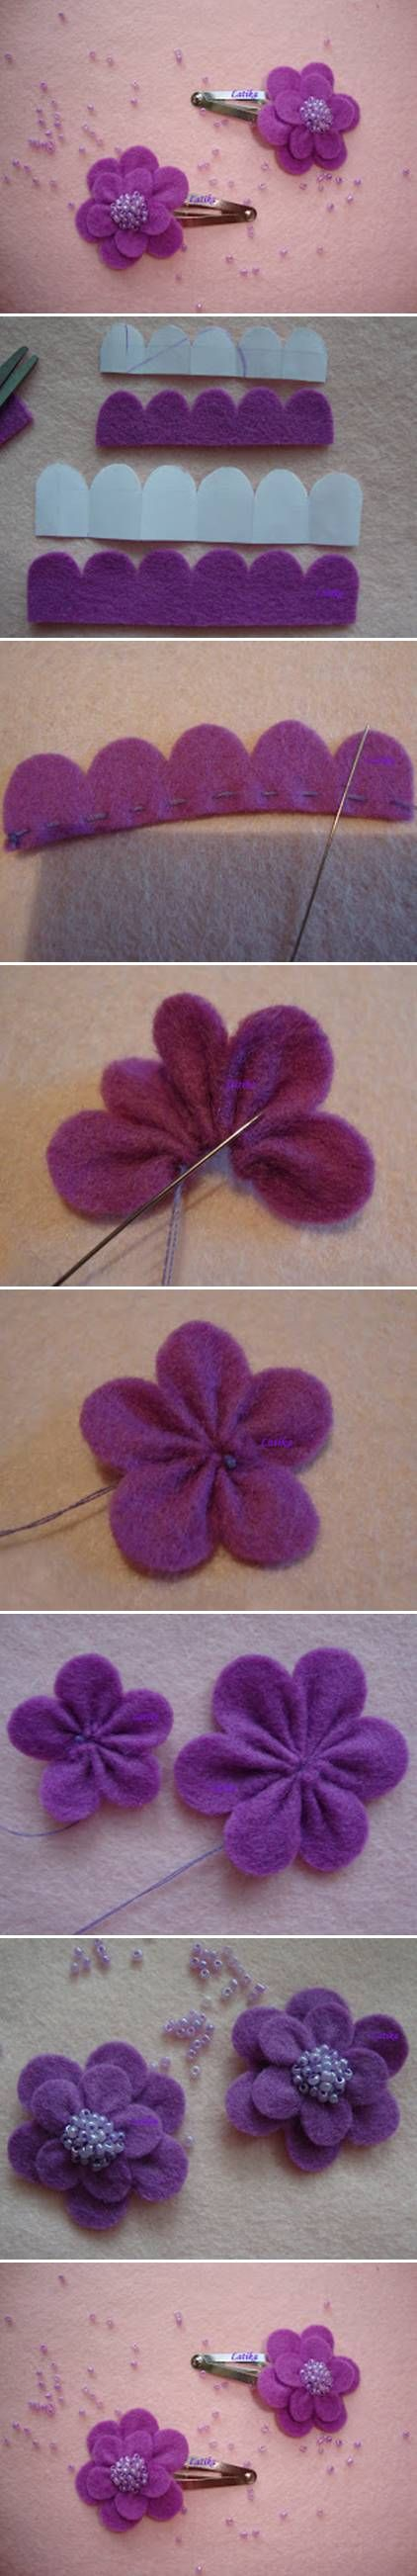 florecitas..para lo que queramos hacer . How to DIY Simple Felt Morning Flower | www.FabArtDIY.com LIKE Us on Facebook ==> https://www.facebook.com/FabArtDIY